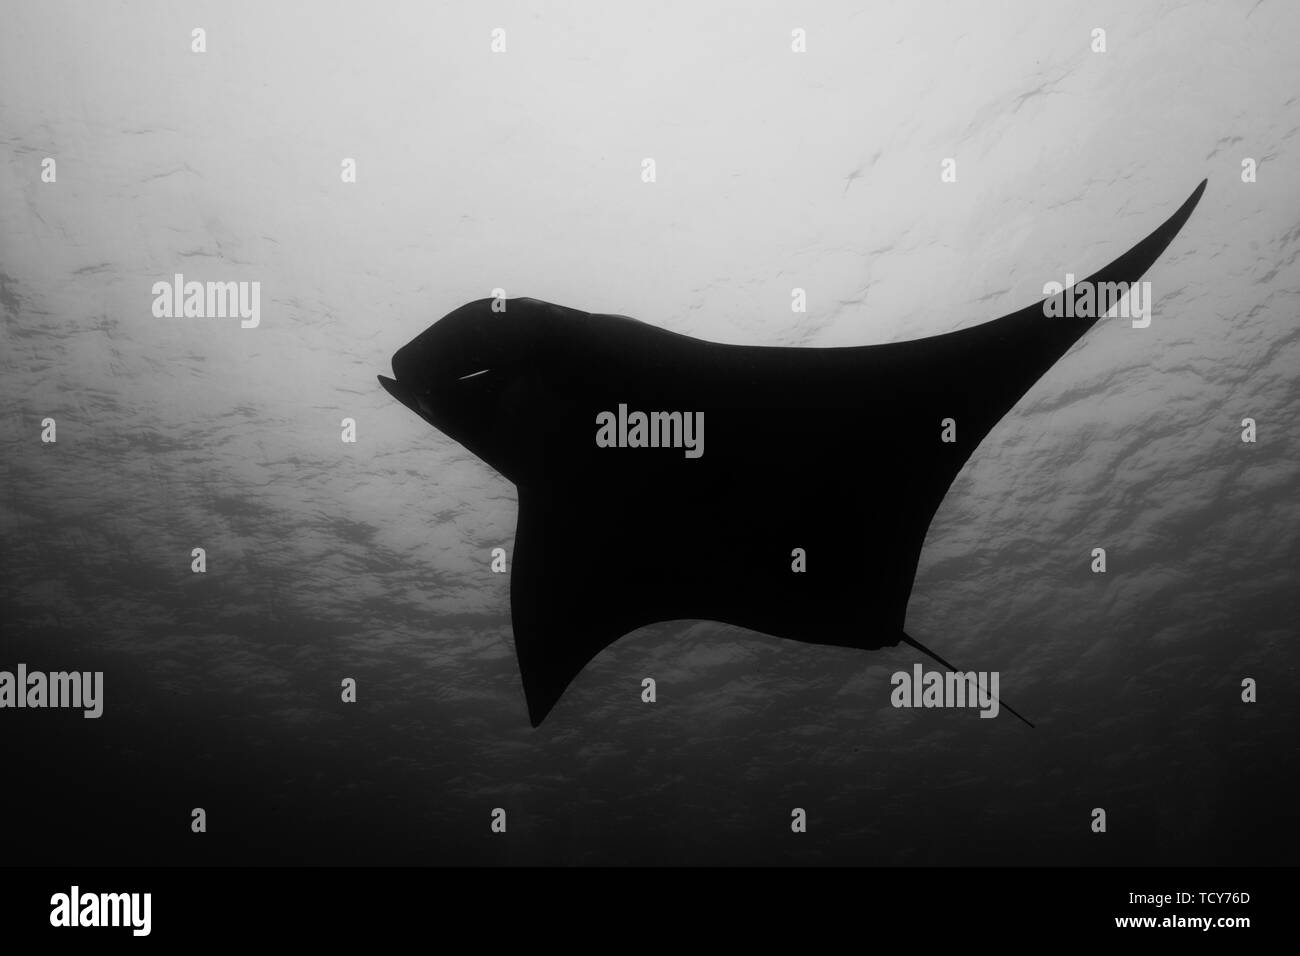 hight resolution of oceanic manta ray flying around a cleaning station in cristal blue water stock image